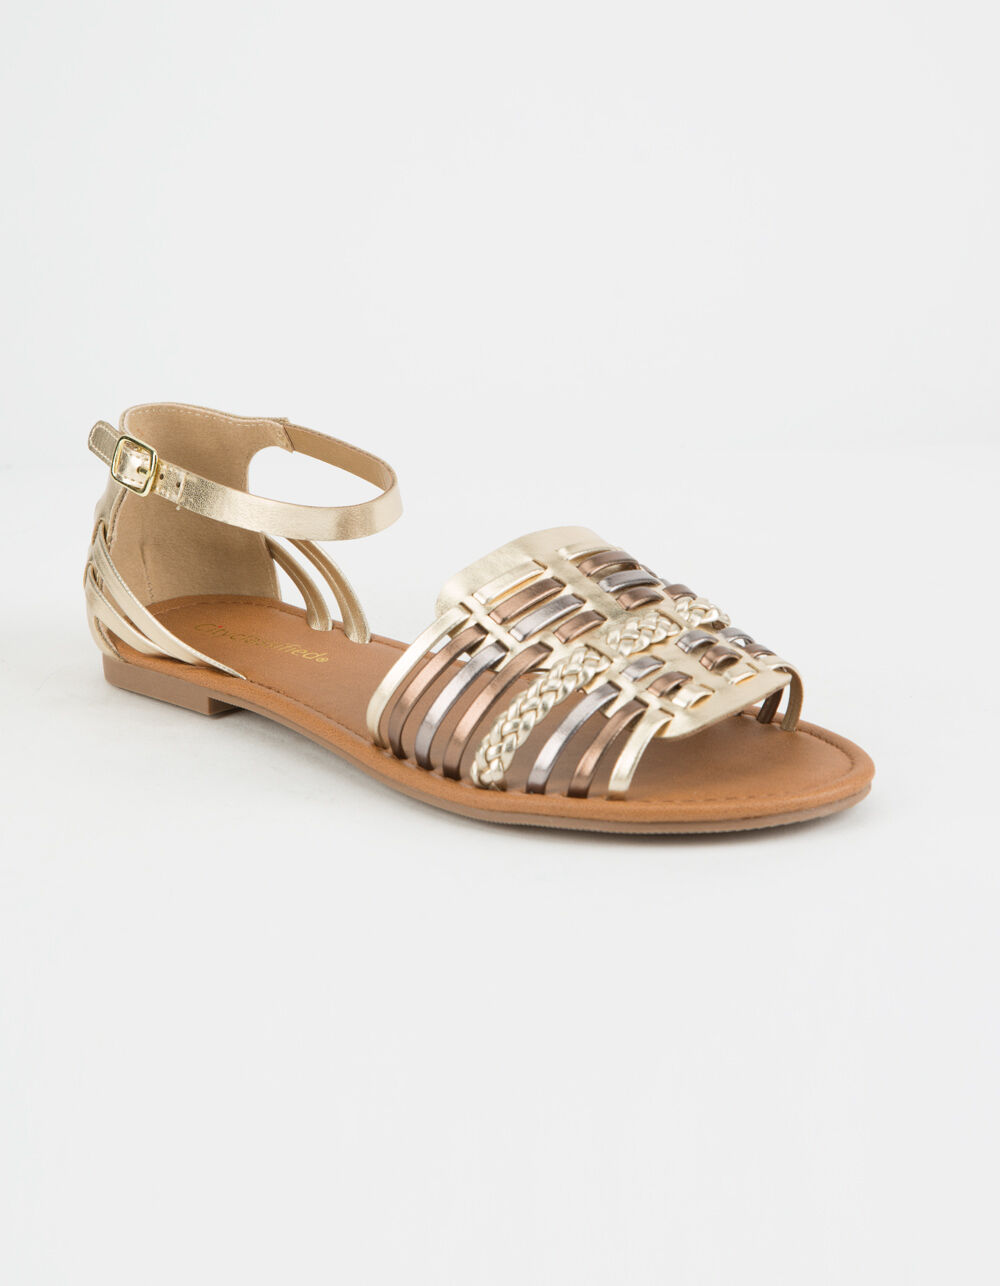 CITY CLASSIFIED WOVEN BASKET WEAVE GOLD SANDALS